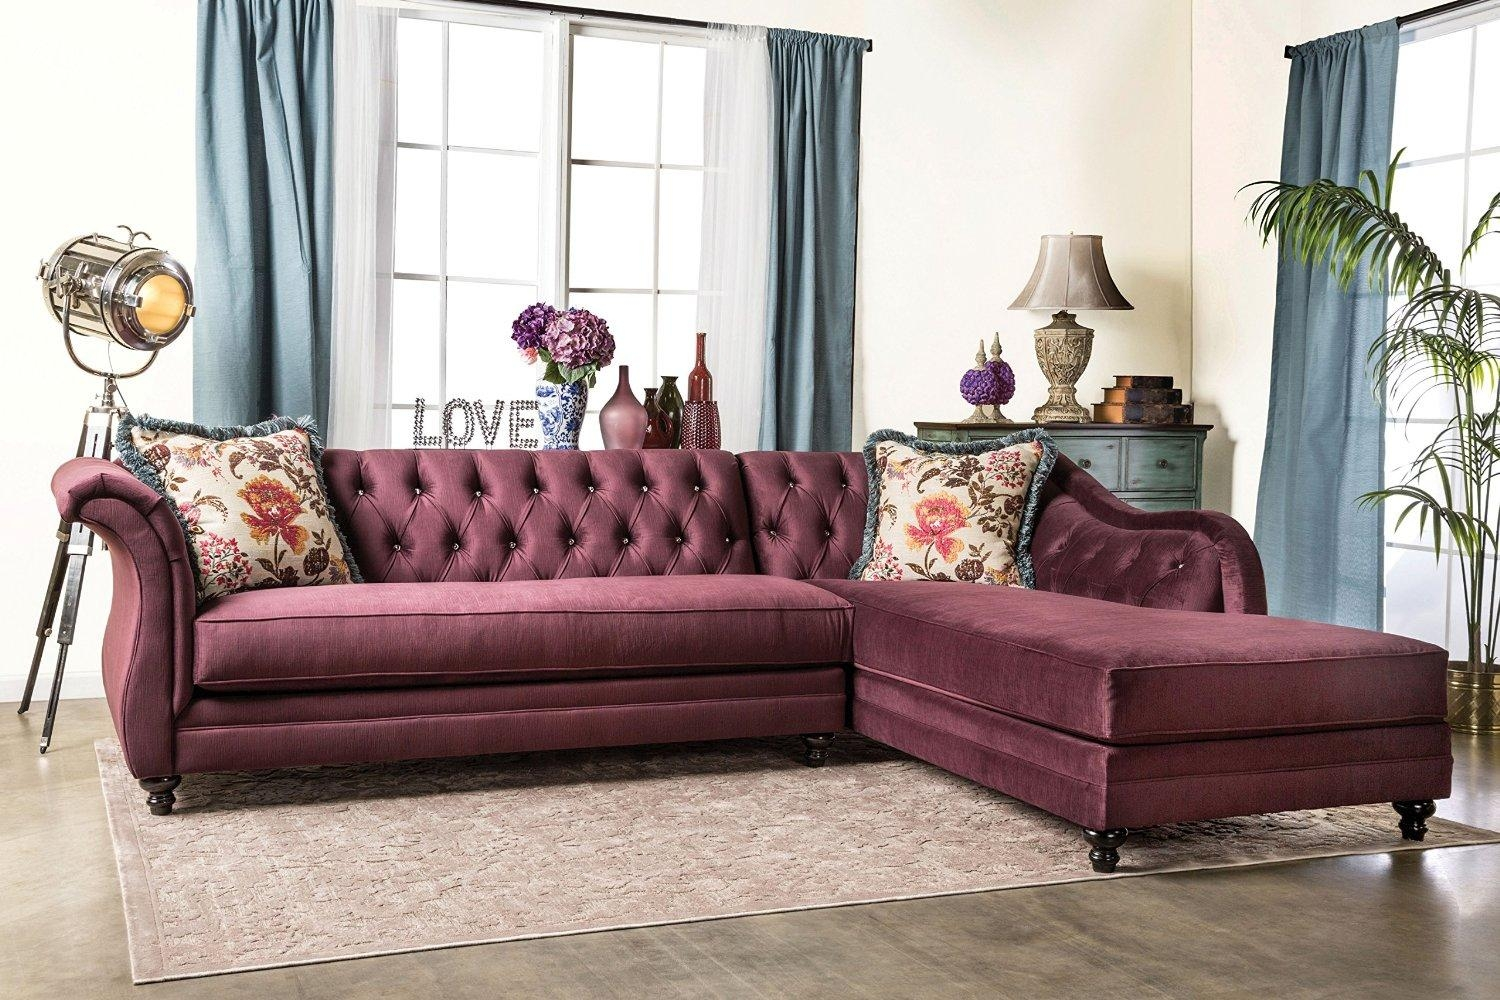 25 Best Chesterfield Sofas To Buy In 2017 with regard to Tufted Leather Chesterfield Sofas